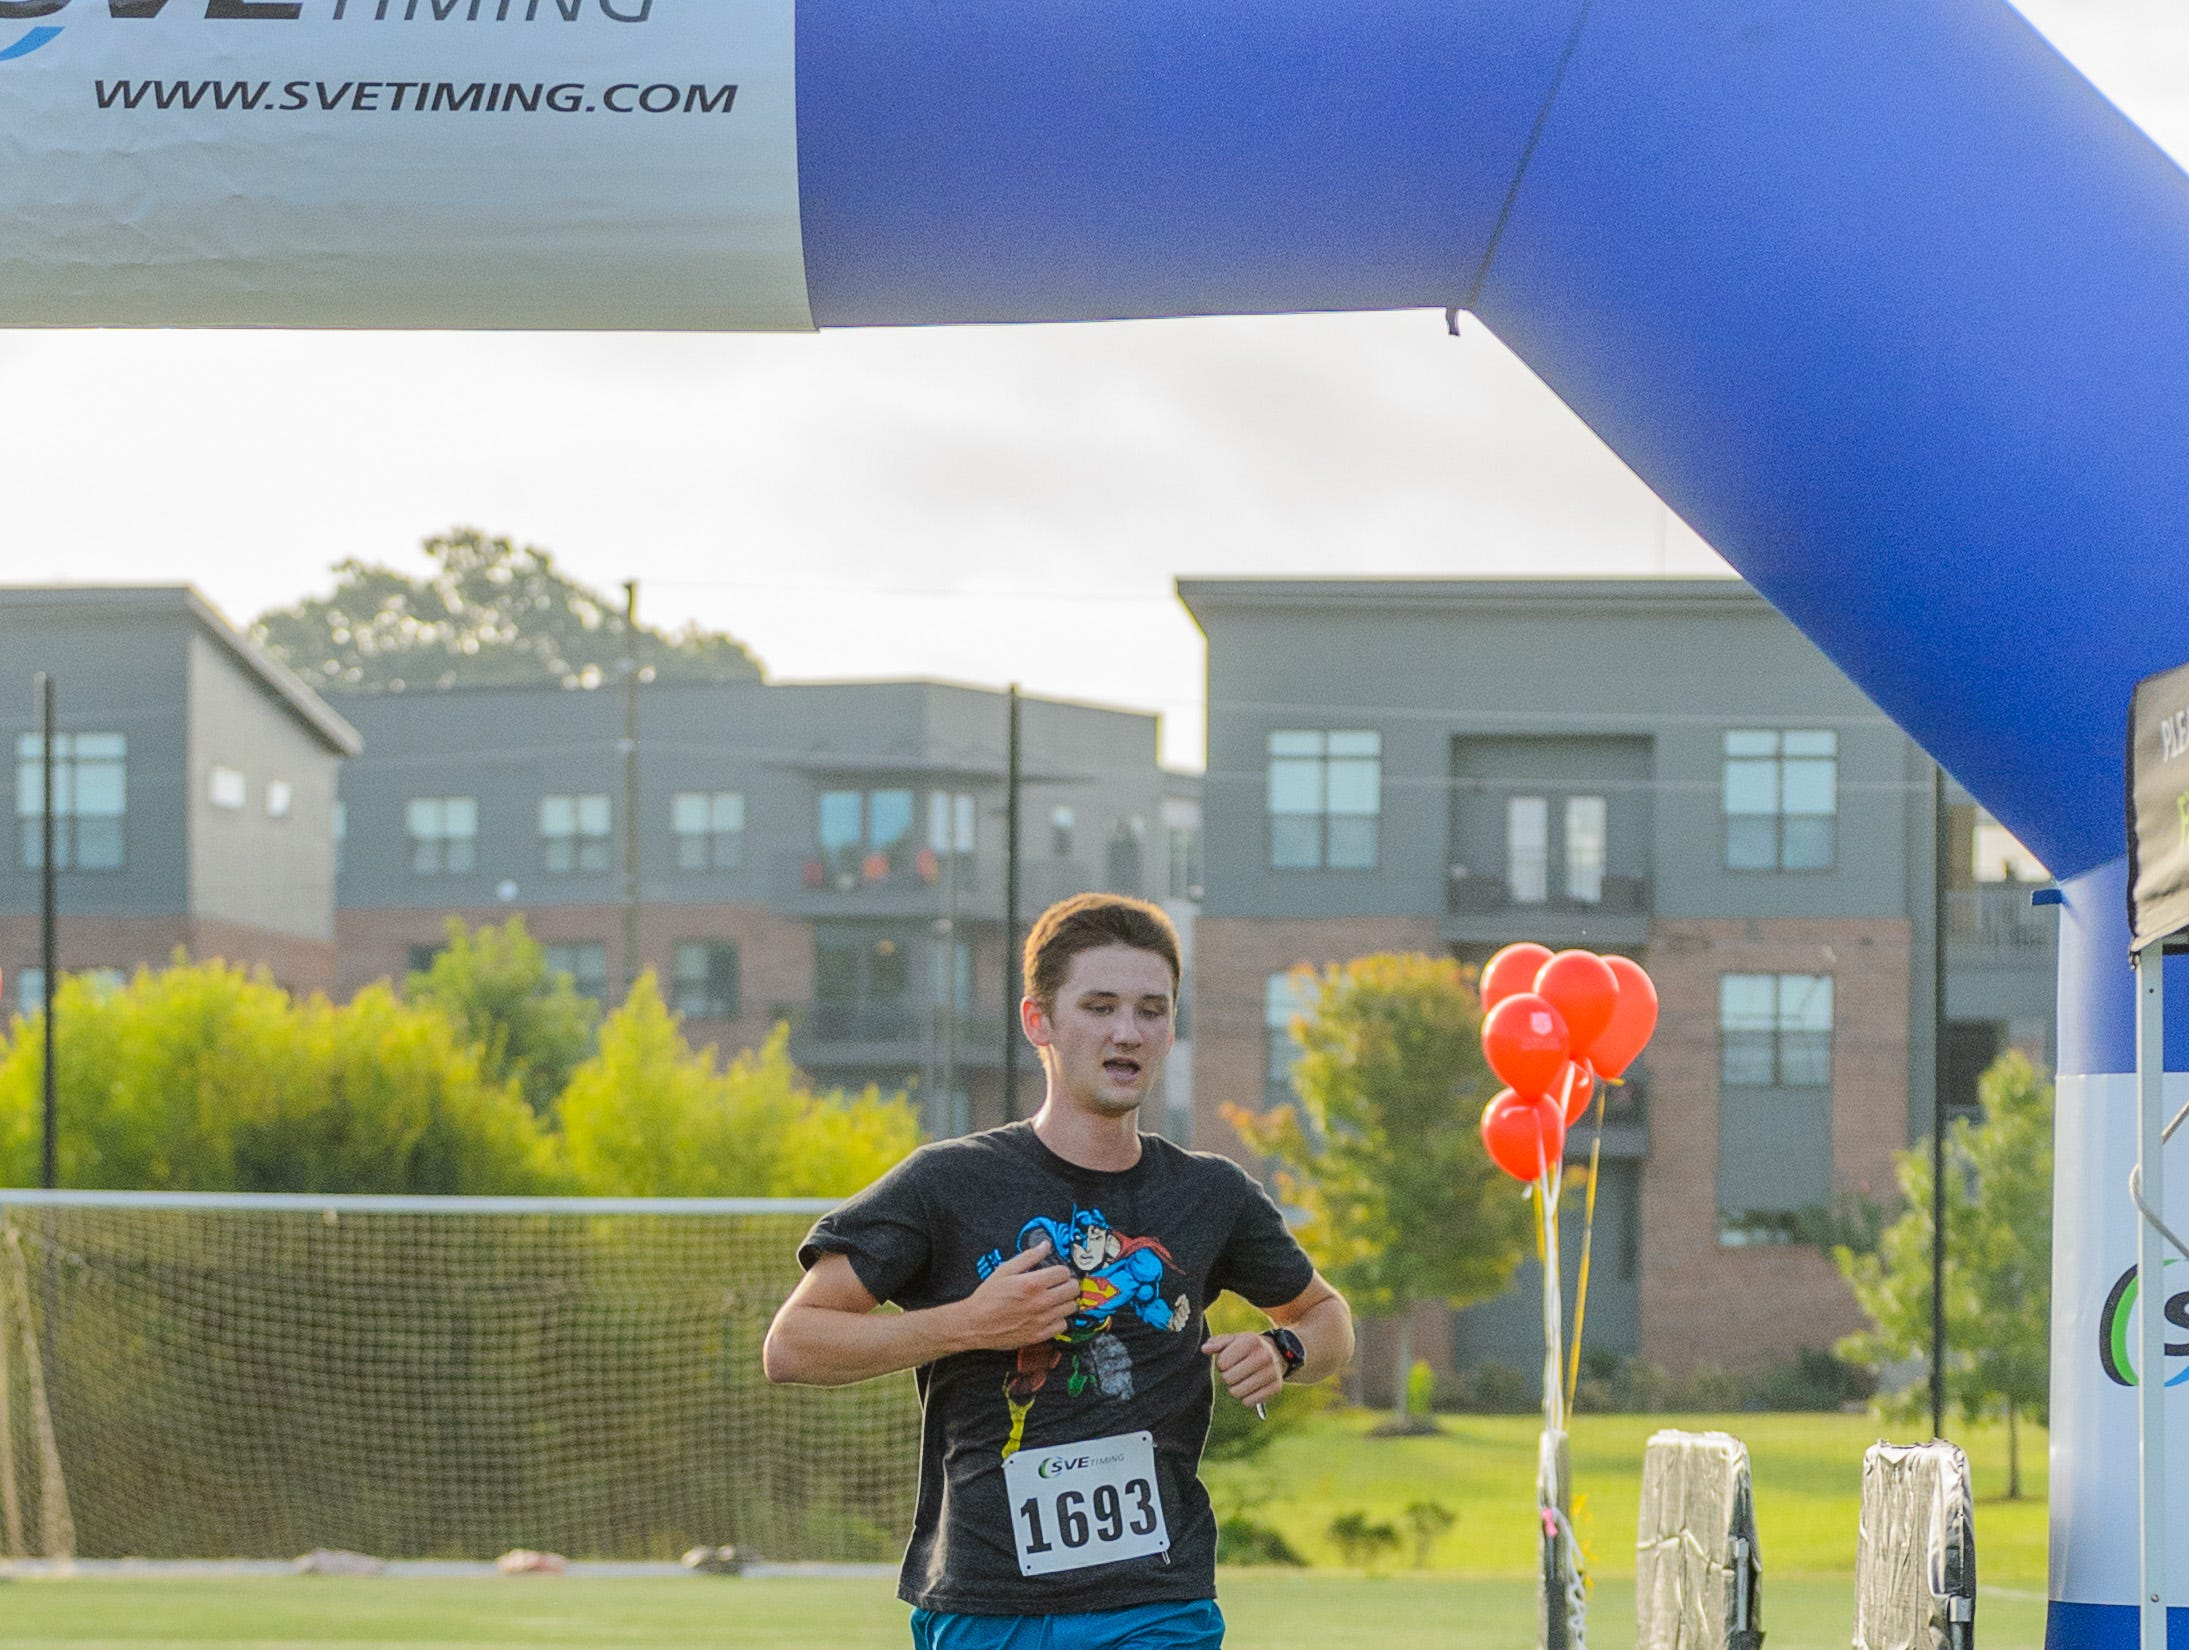 Grayson Martin crosses the finish line to come in 1st place during the 4th annual Superhero 5K to benefit The Salvation Army Boys & Girls Club is held on Saturday, August 11, 2018 at the Kroc Center in Downtown Greenville.